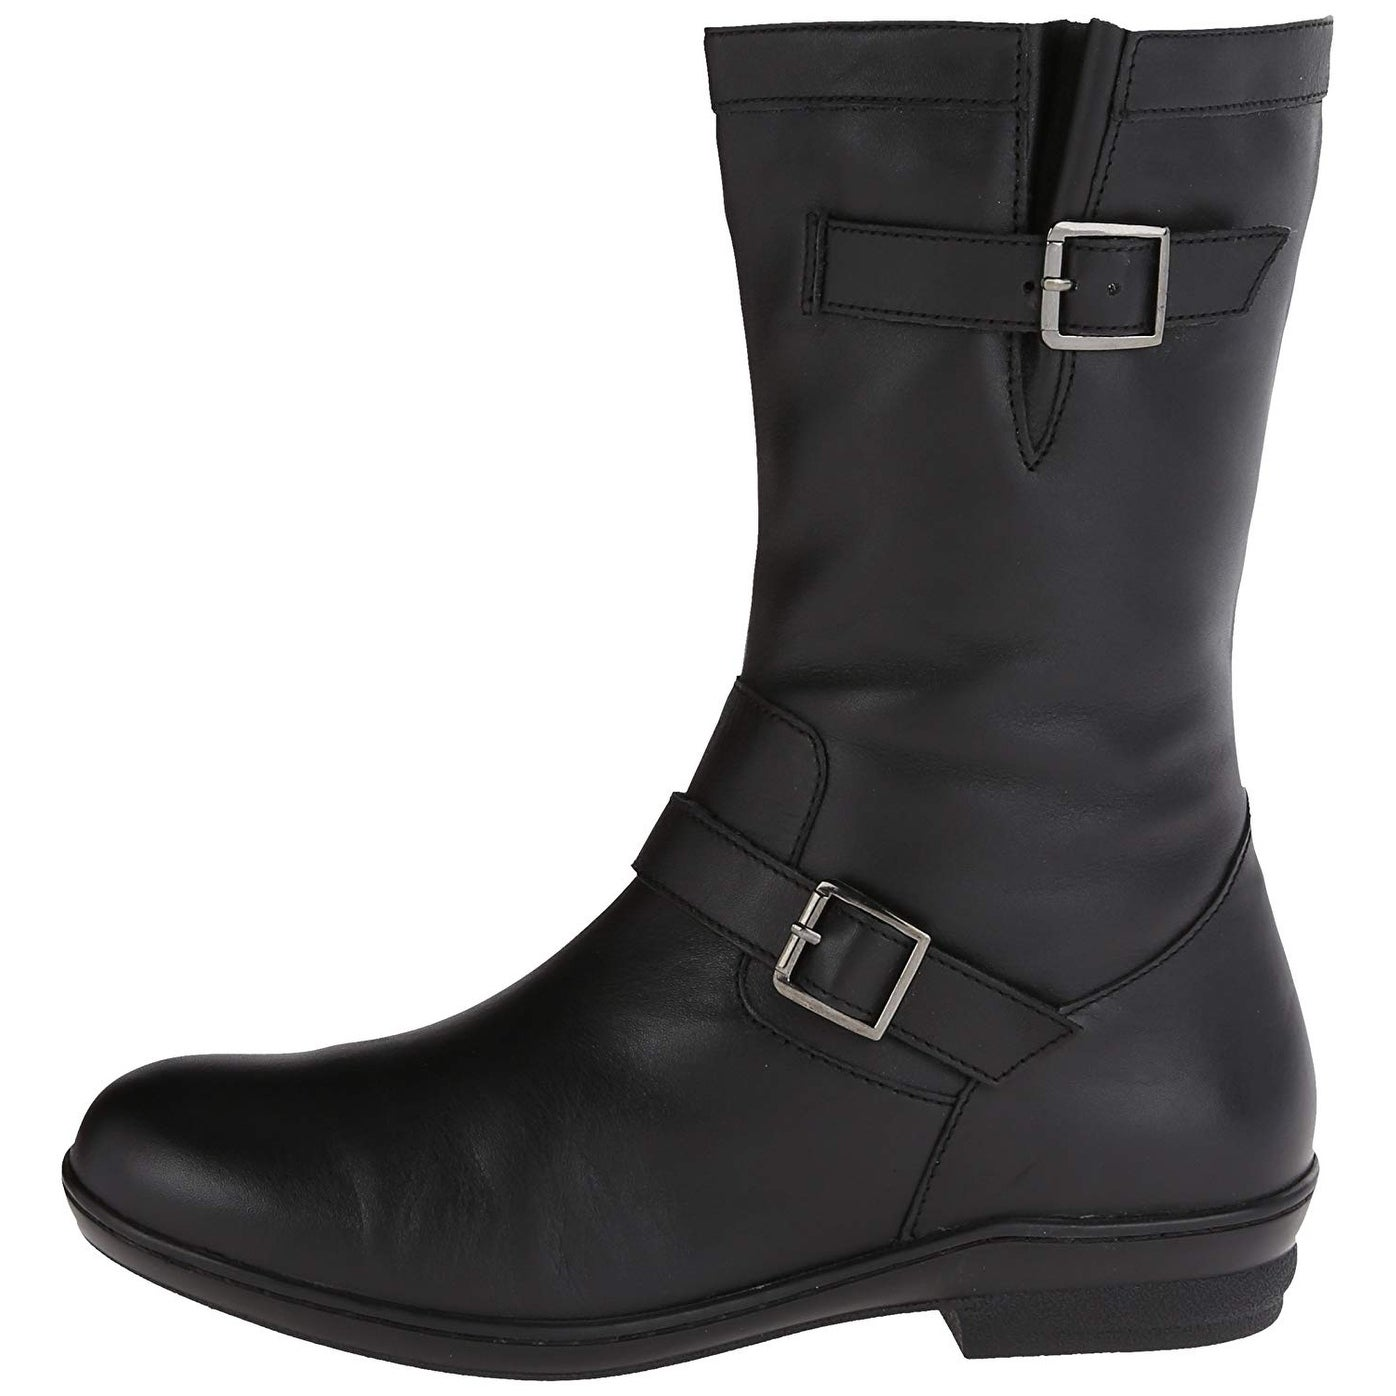 129af0c2a8a9 Buy David Tate Women s Boots Online at Overstock